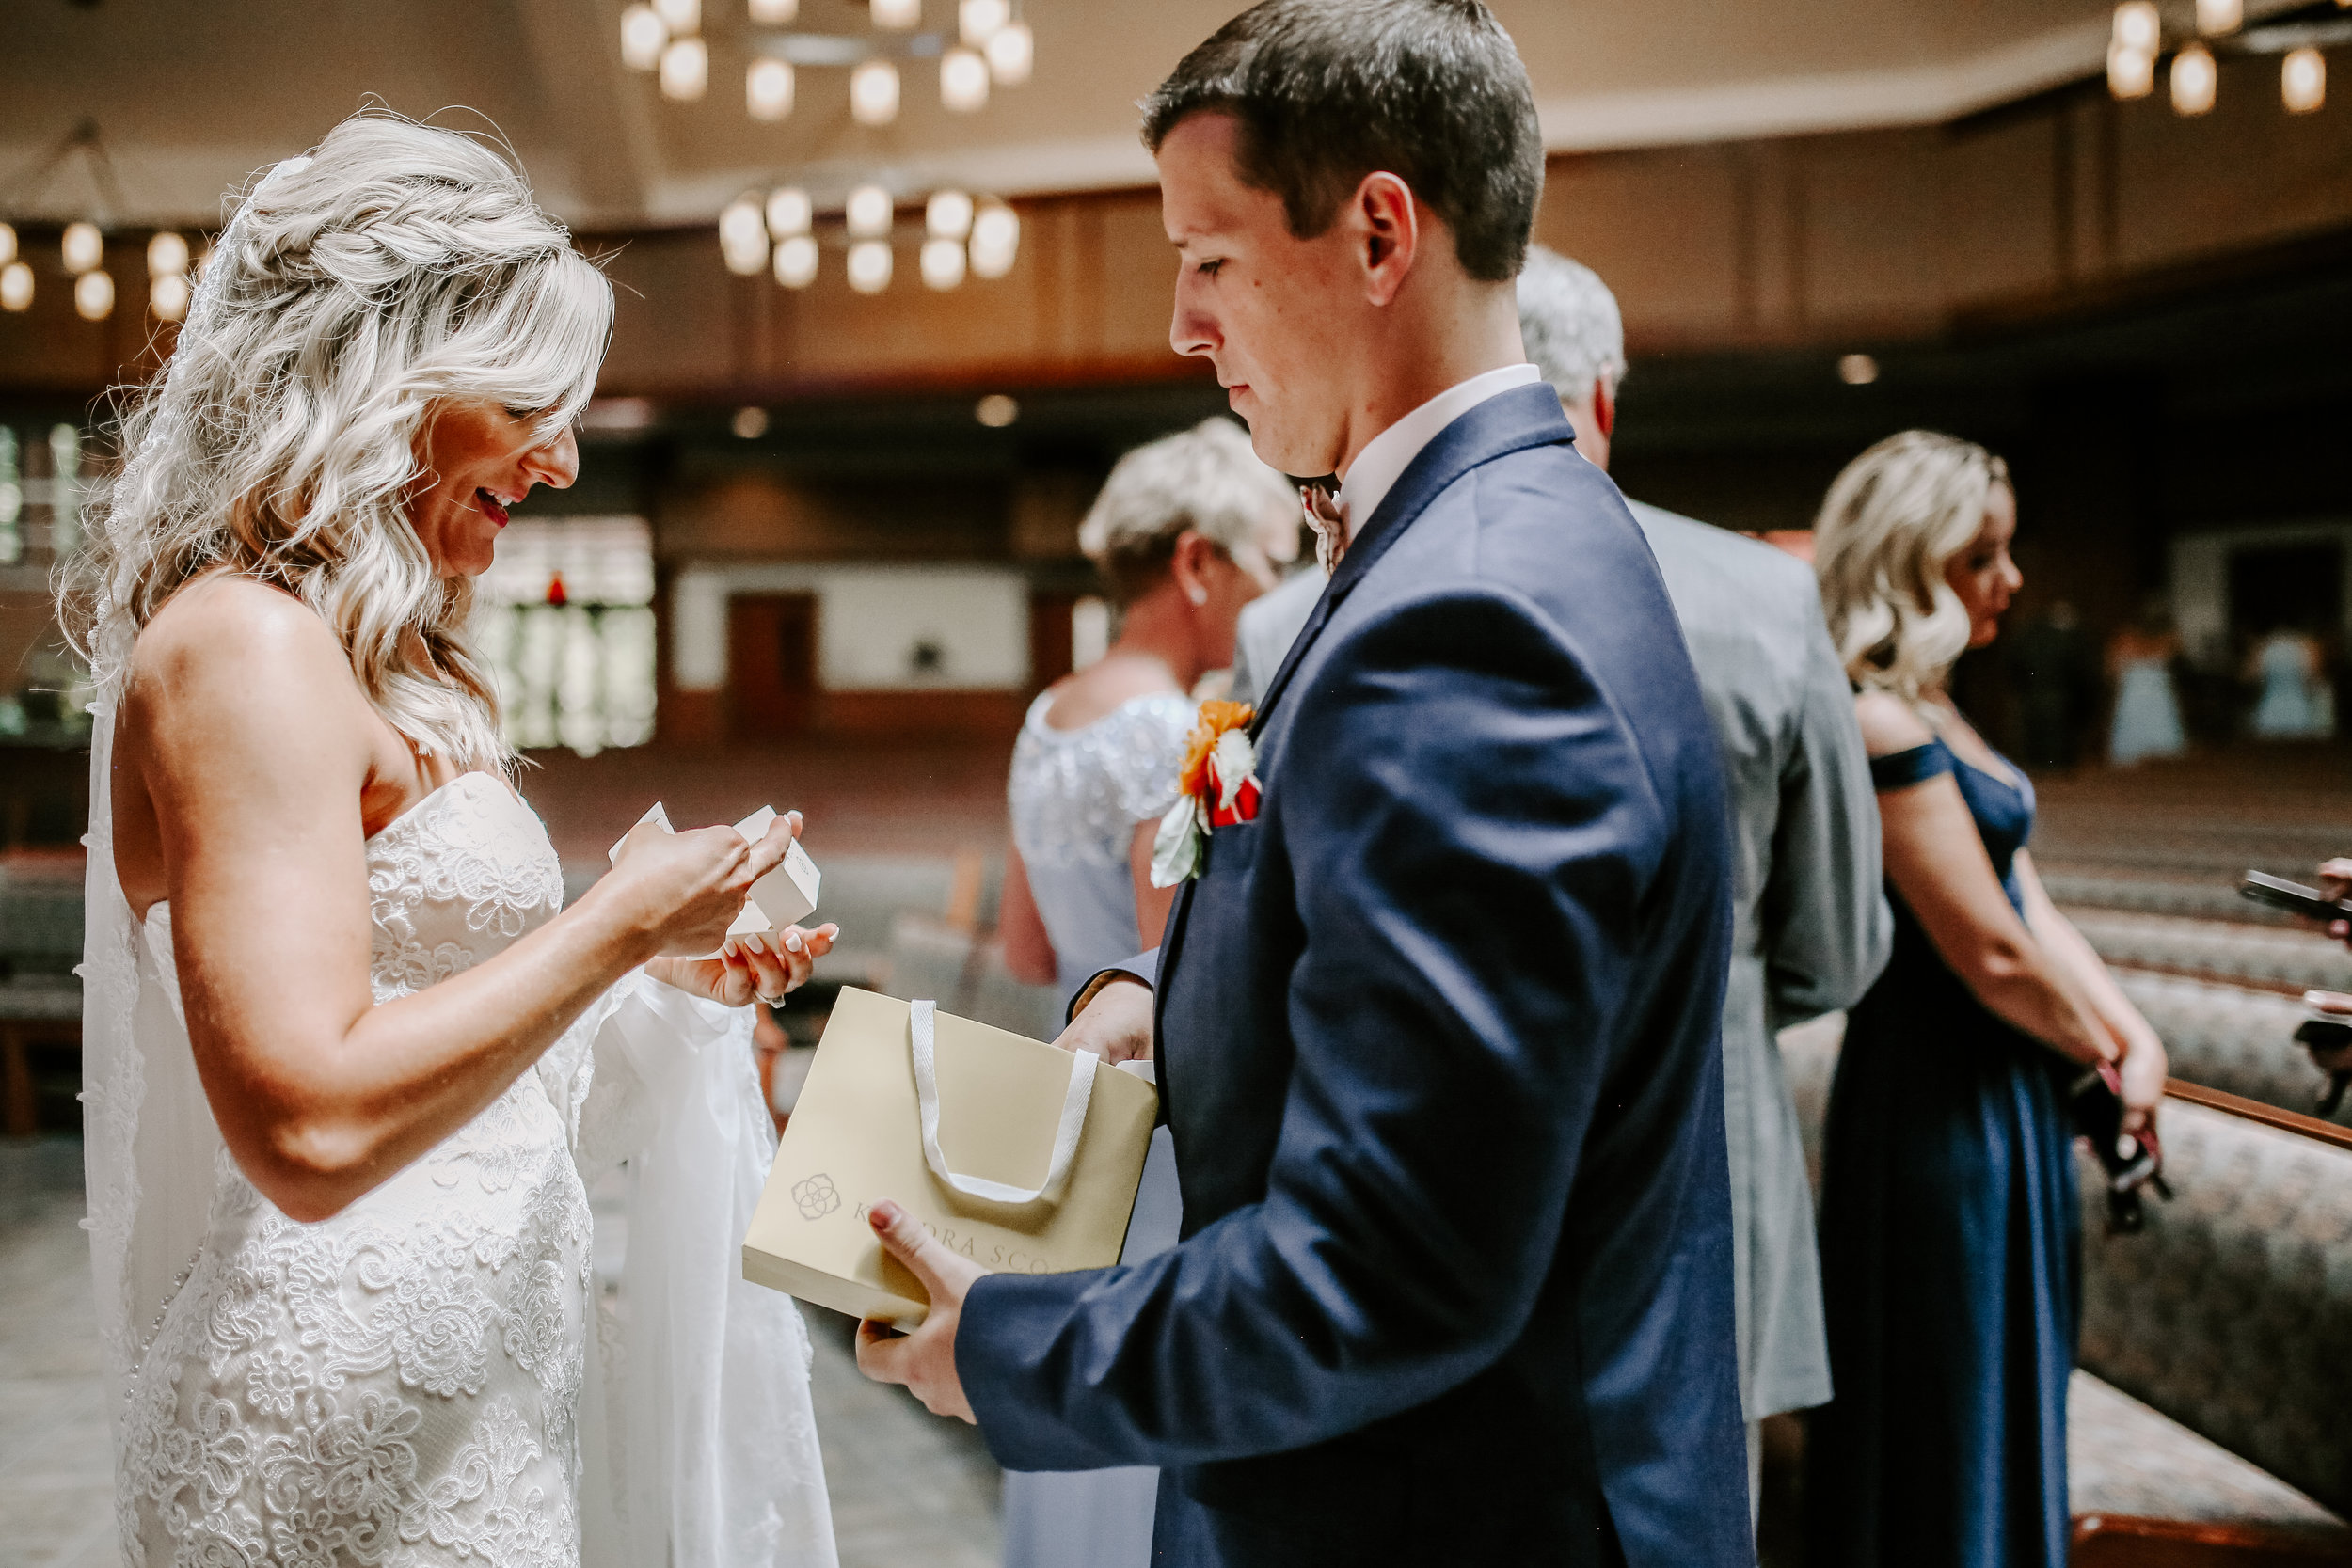 LaceyKevin_Married_2018-226.jpg